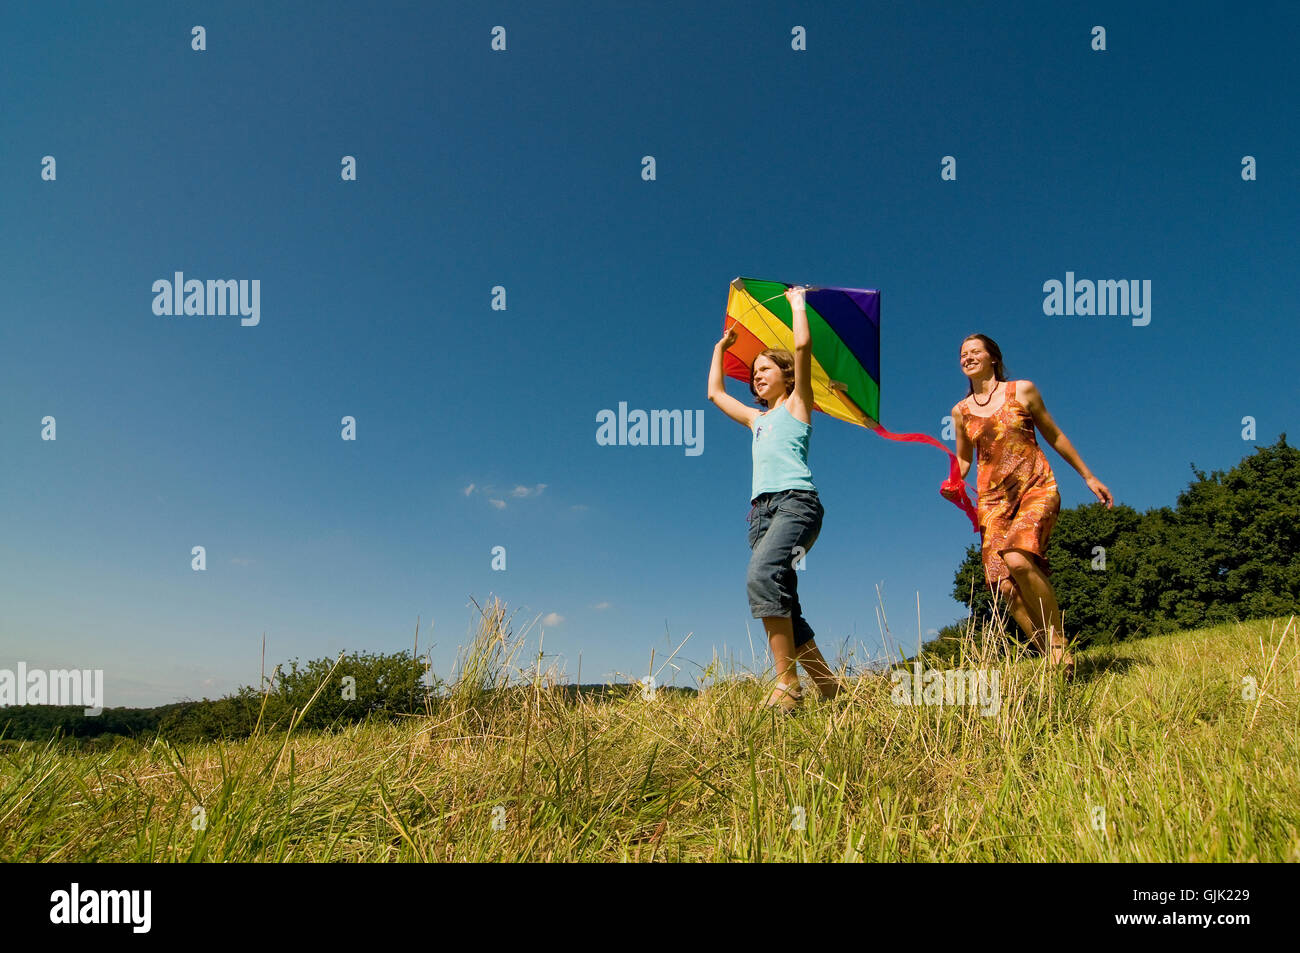 spare time free time leisure - Stock Image